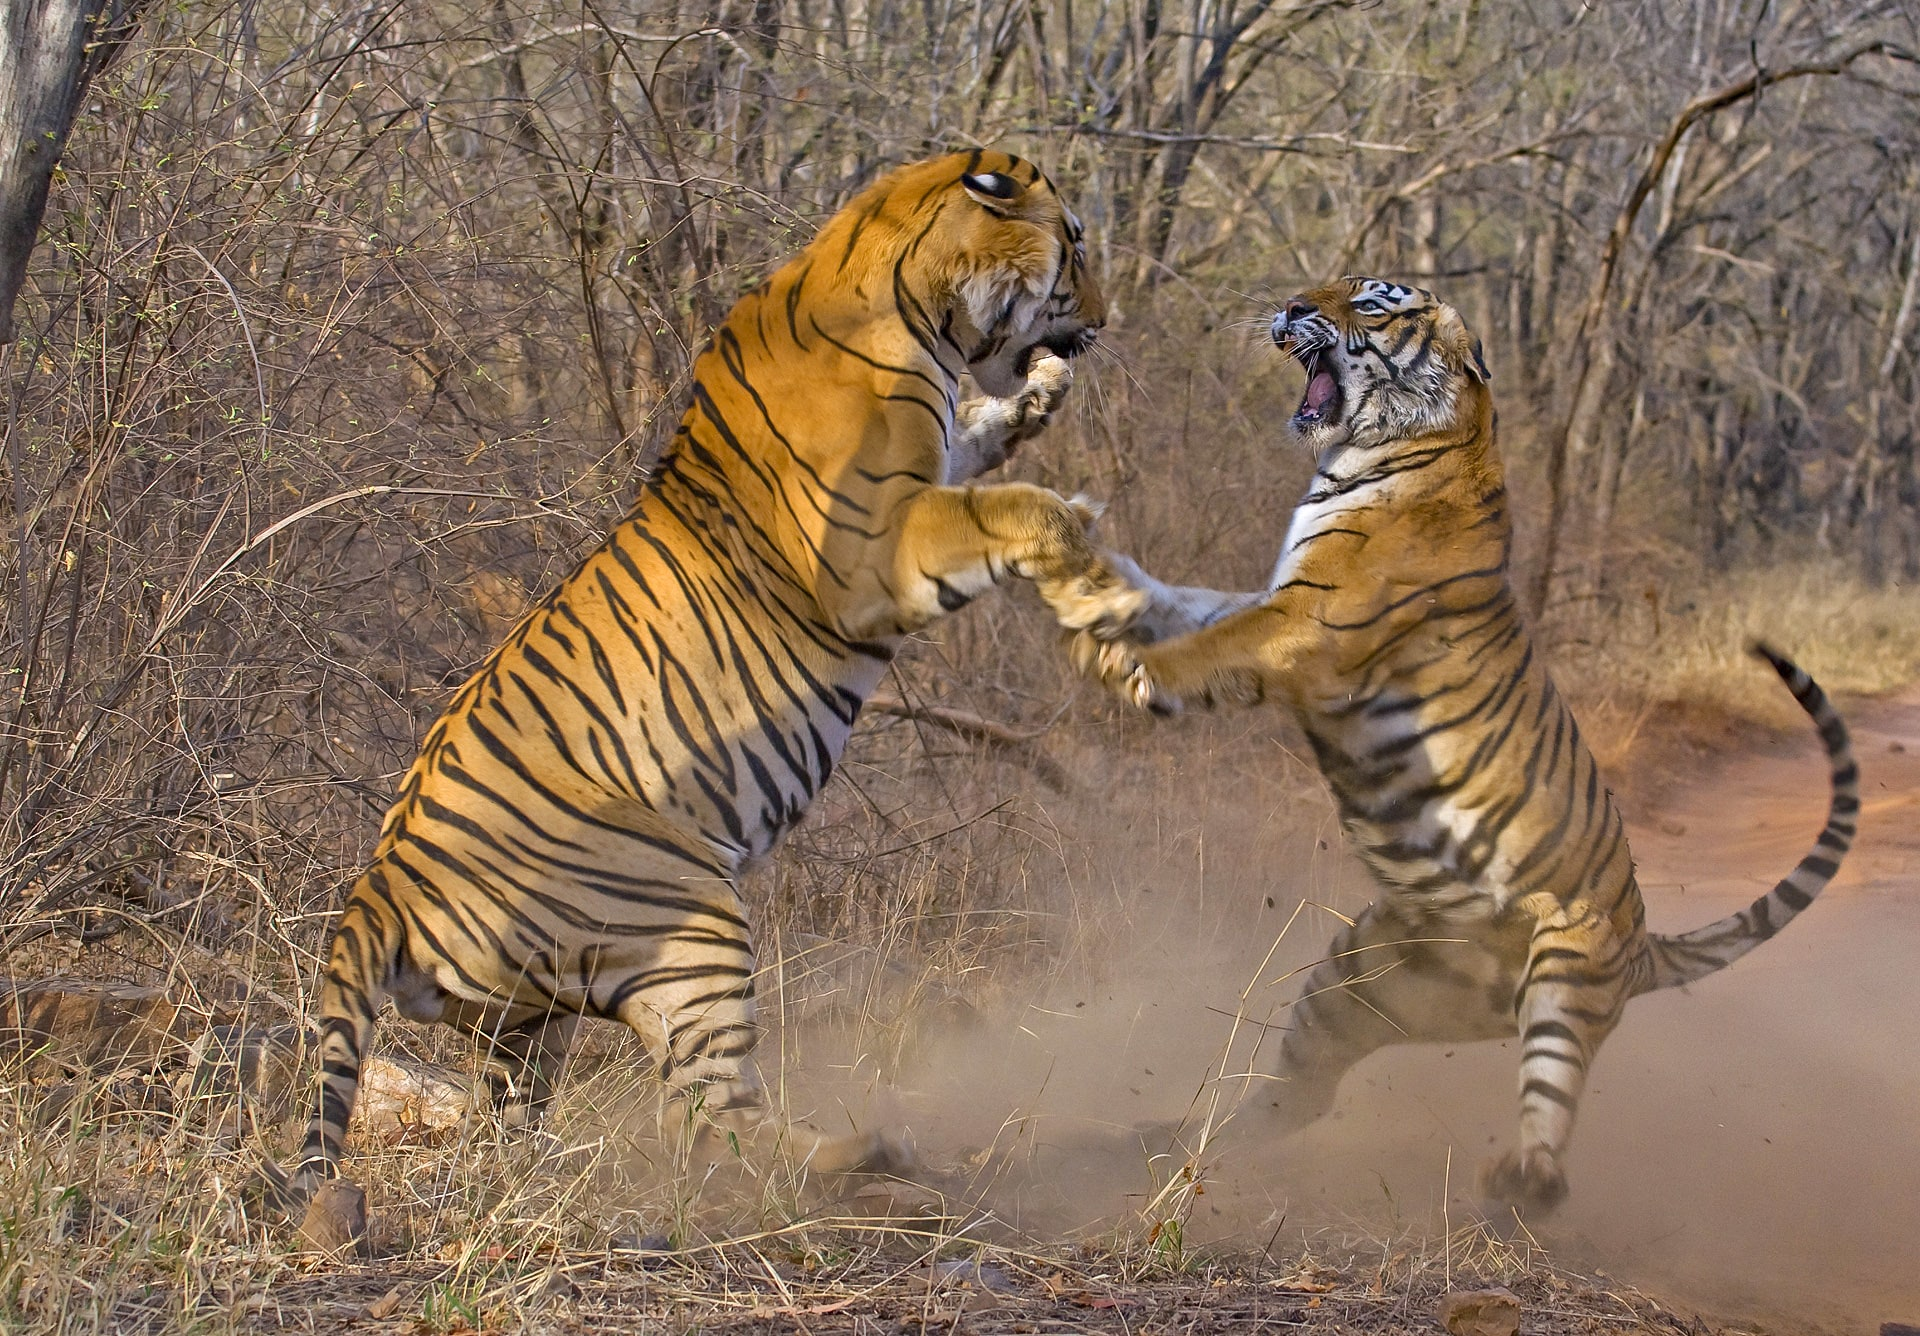 A sub-adult male tiger (left) in a territory battle with the legendary tigress Machli (right) at the Ranthambhore National Park in 2009. Dhritiman was one of the only photographers to get this award-winning shot.